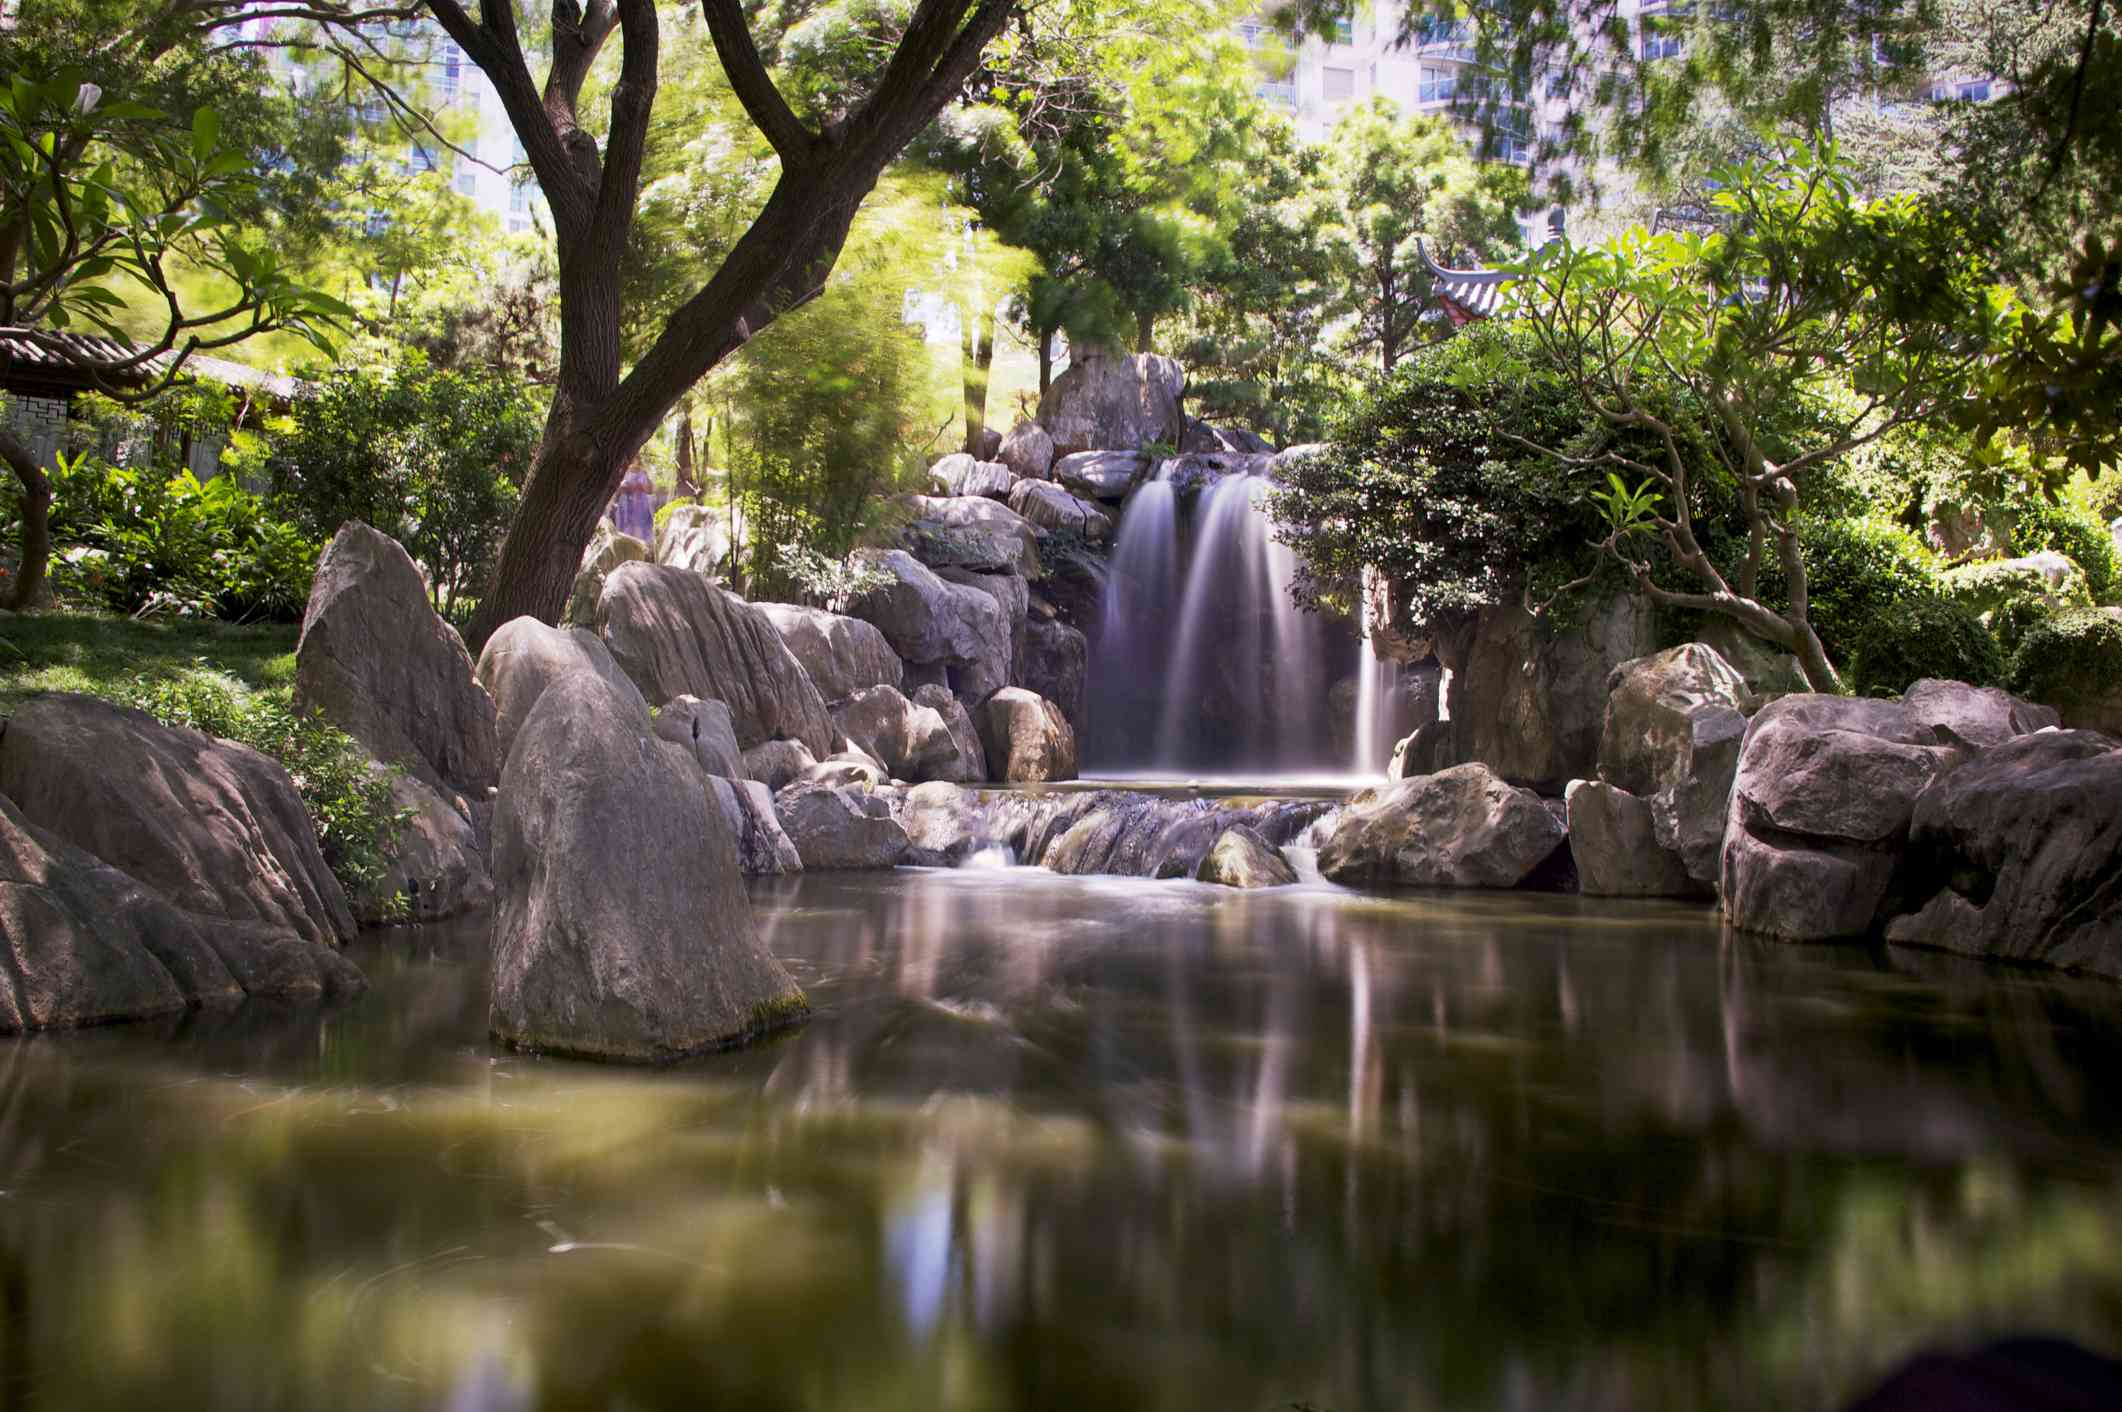 Waterfall in the Chinese Garden of Friendship